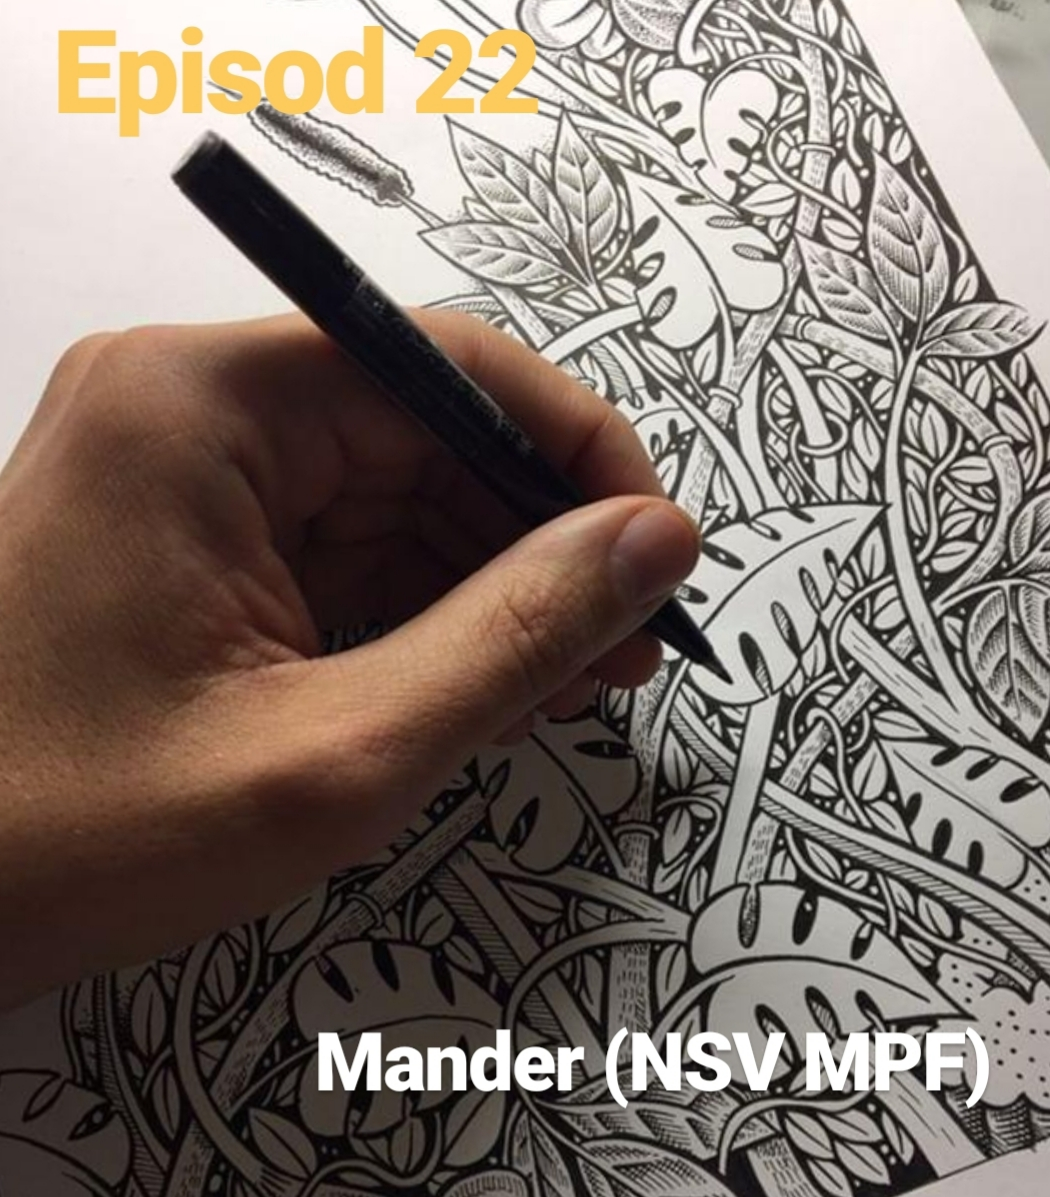 Episod 22. Mander (NSV MPF) feat. Track